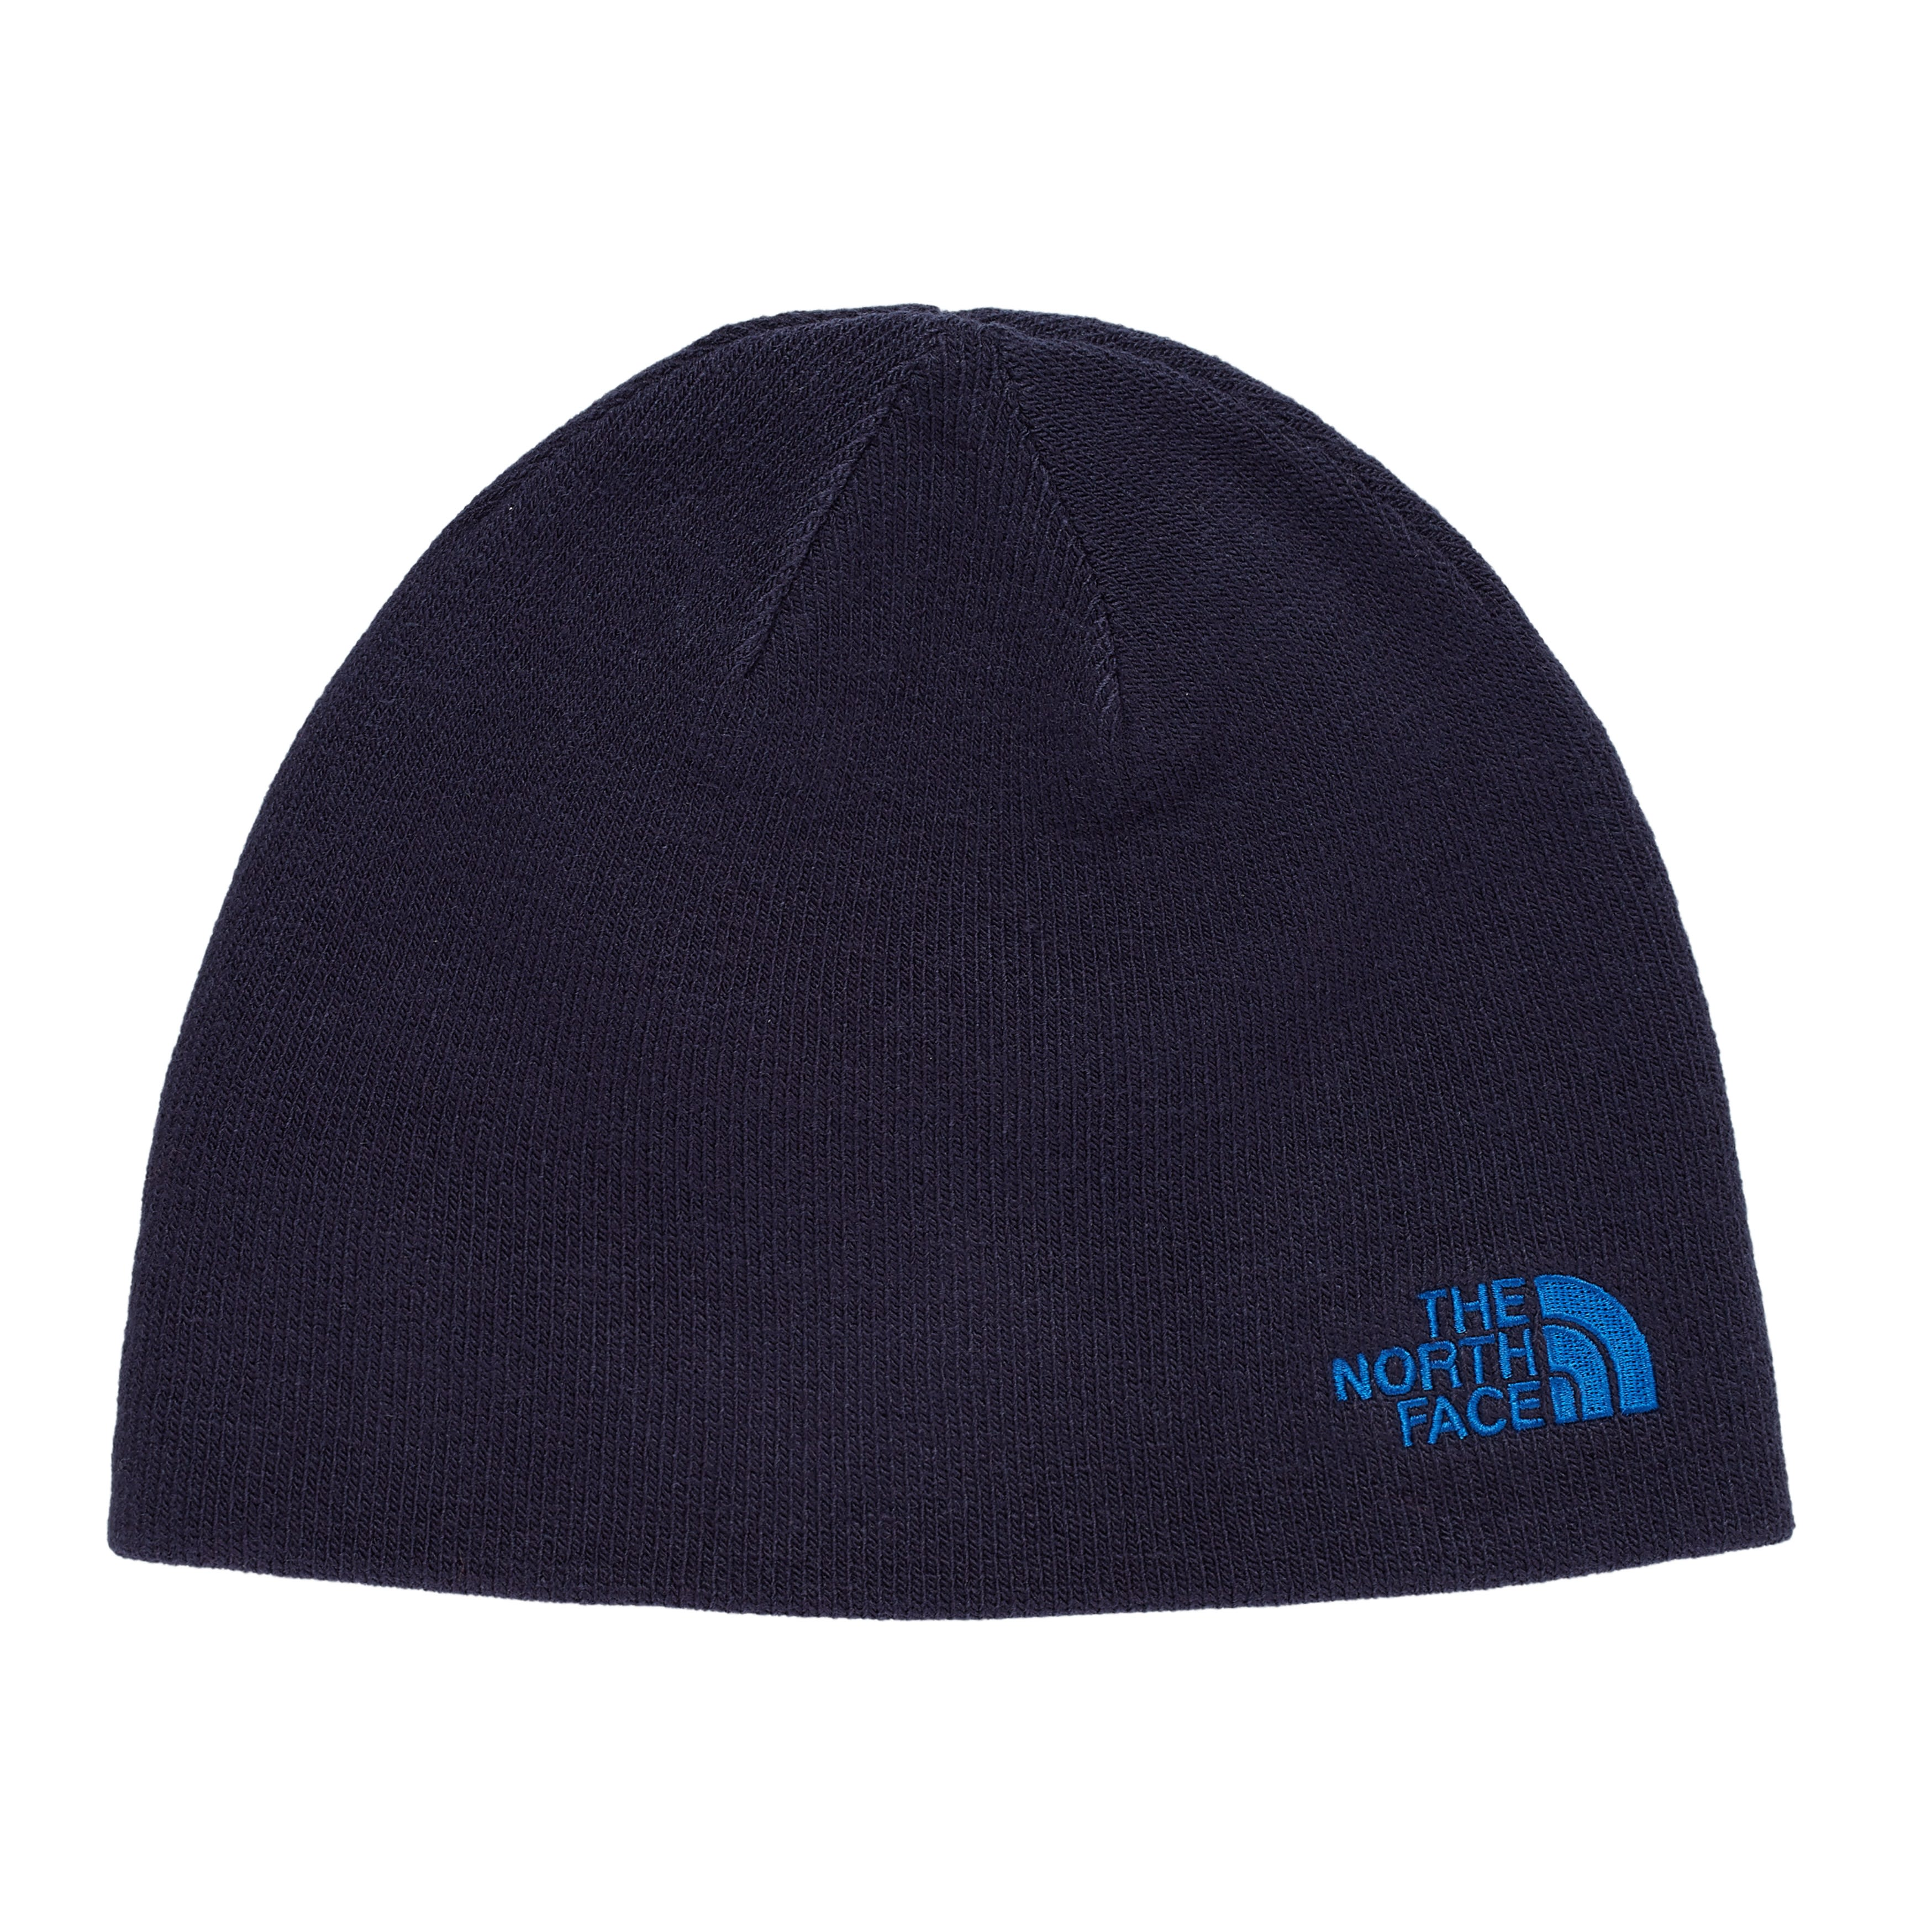 05285f63b21 Buy The North Face Gateway Beanie from Outnorth